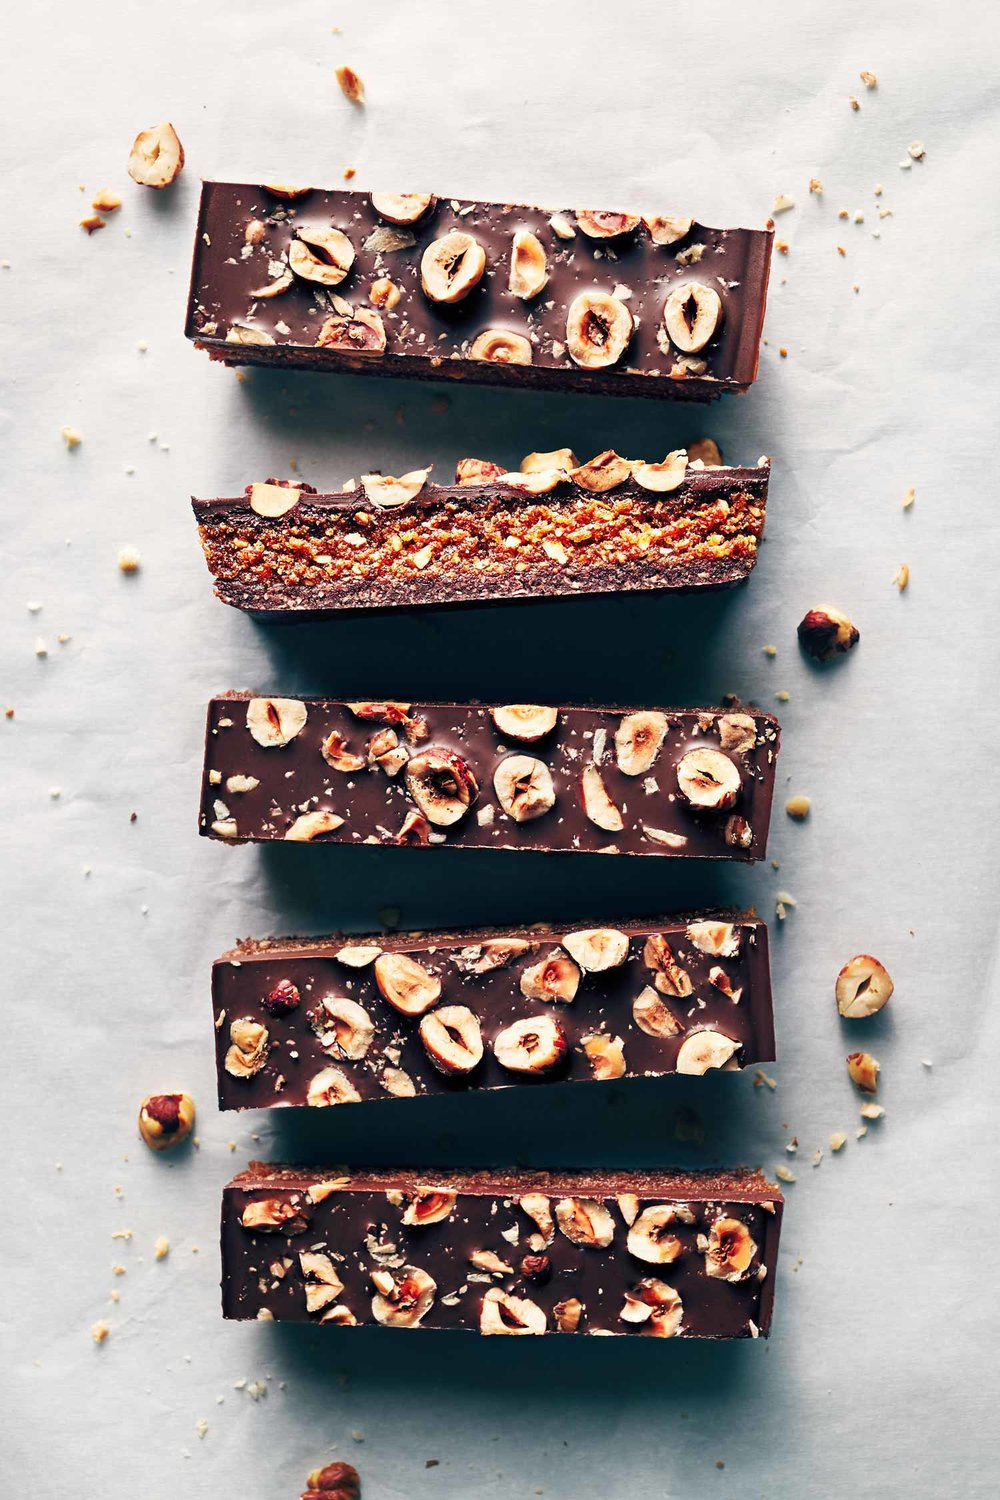 Chocolate Hazelnut Praline Bars | Evergreen Kitchen | Vegan & Gluten Free